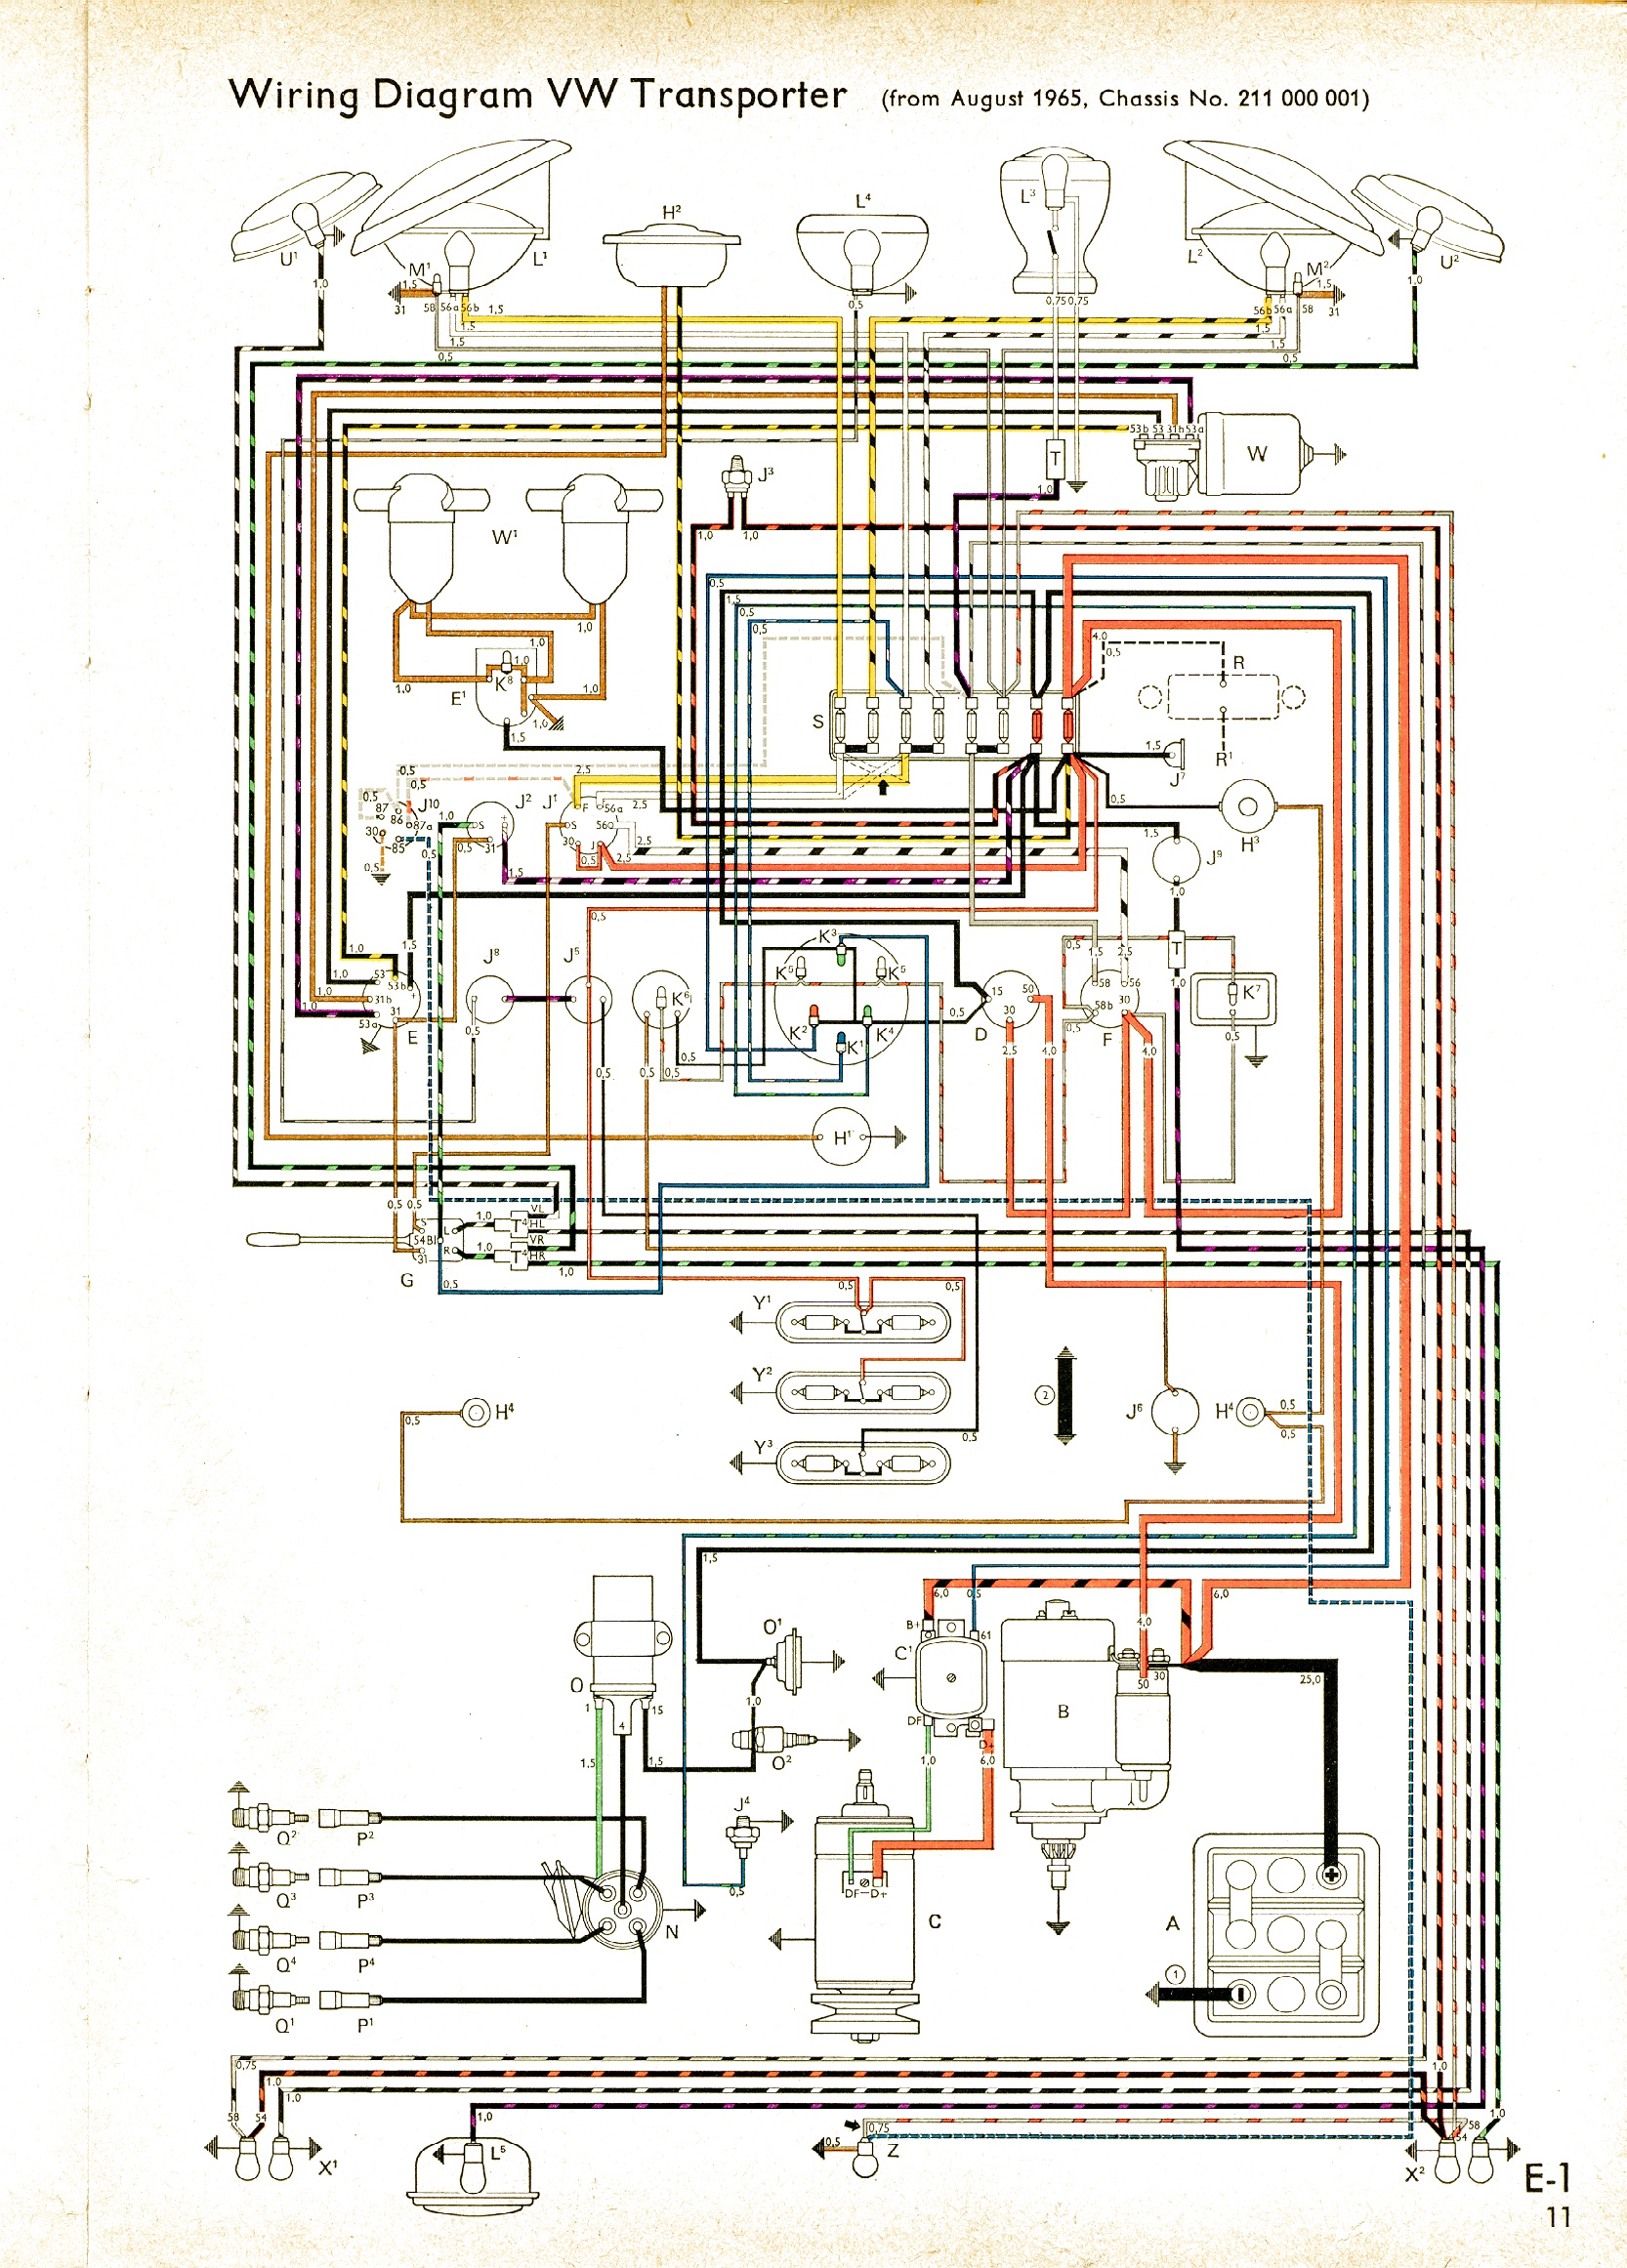 bus 65 vw bus wiring diagram 1965 vw bus wiring diagram \u2022 wiring diagrams Air 1964 Bel at alyssarenee.co